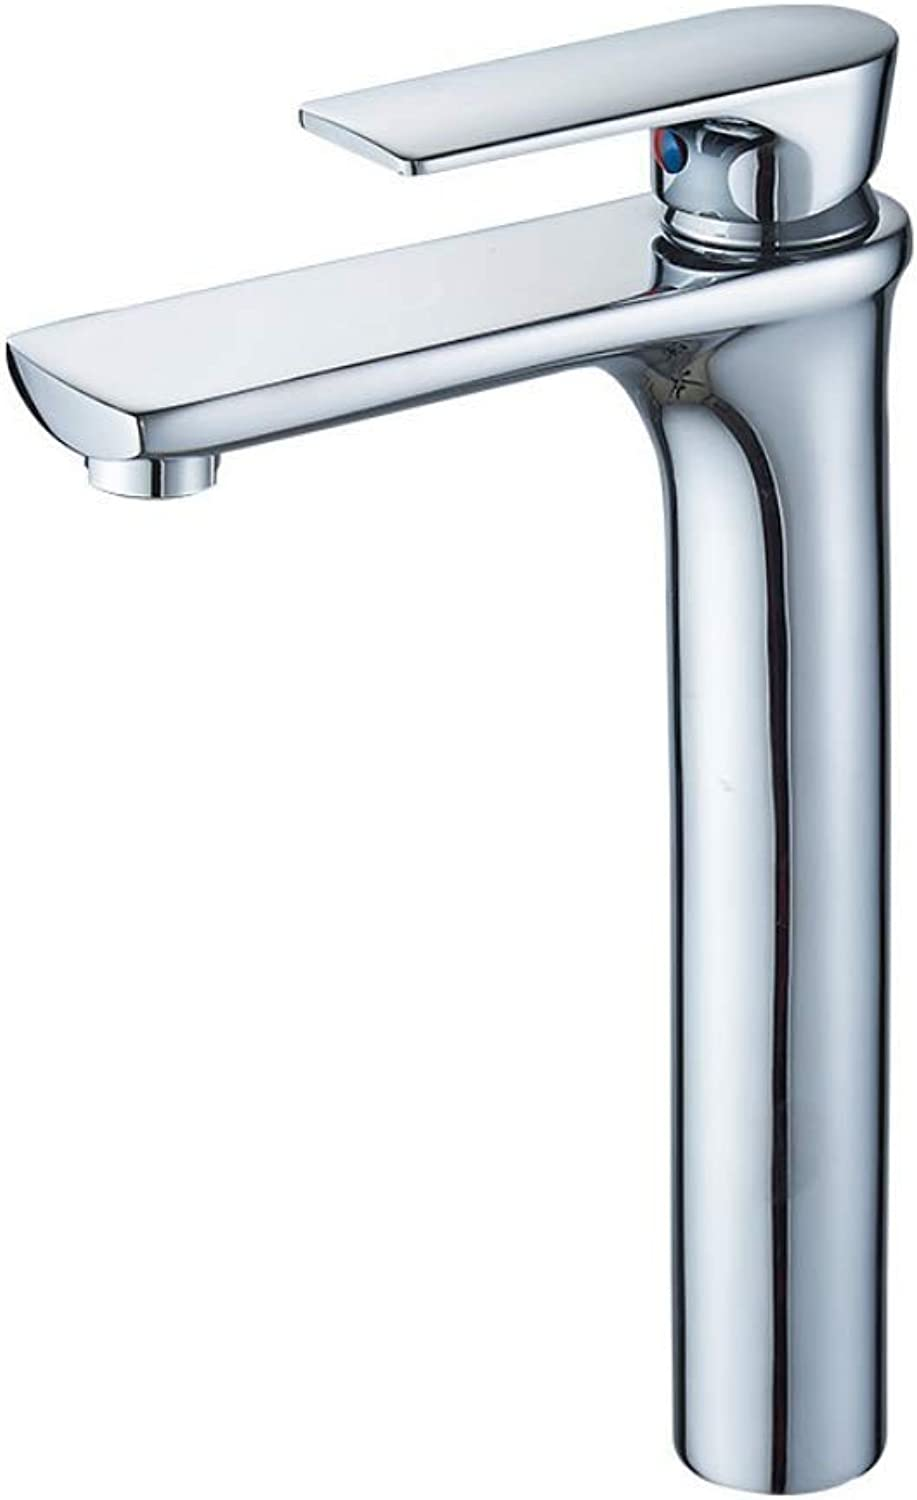 GWX Bathroom Basin Mixer, Sink Faucet Chrome Finish Standing Copper Material Bathroom Water Tap, Contemporary Washbasin Mixer